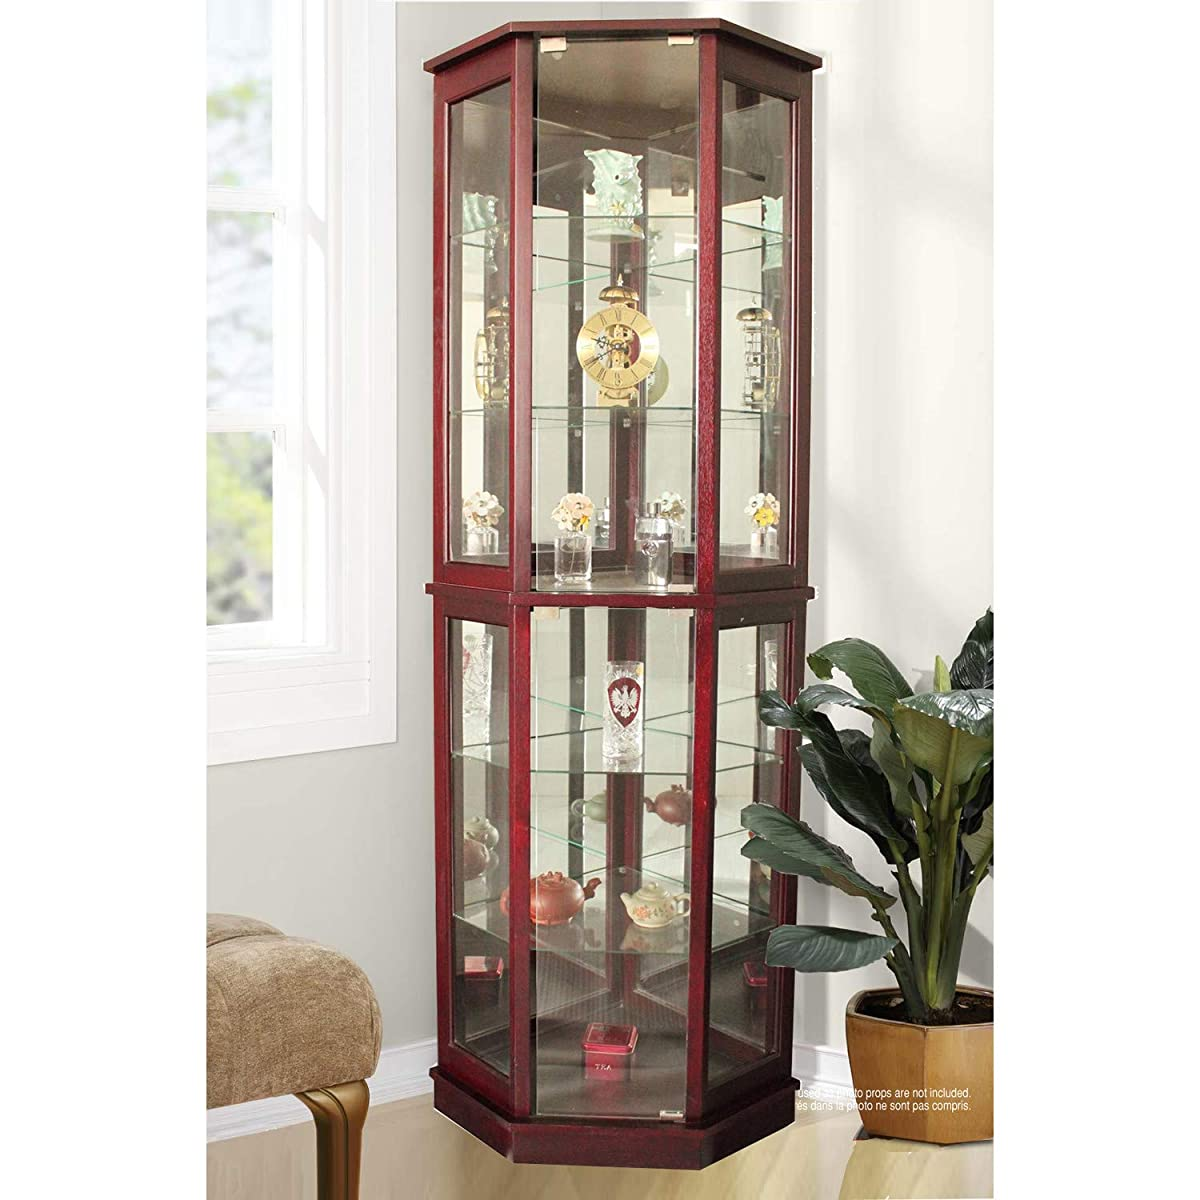 Jenlea Lighted Standing Corner Curio Cabinet and Trophy Display Case with Bonus Feather Duster